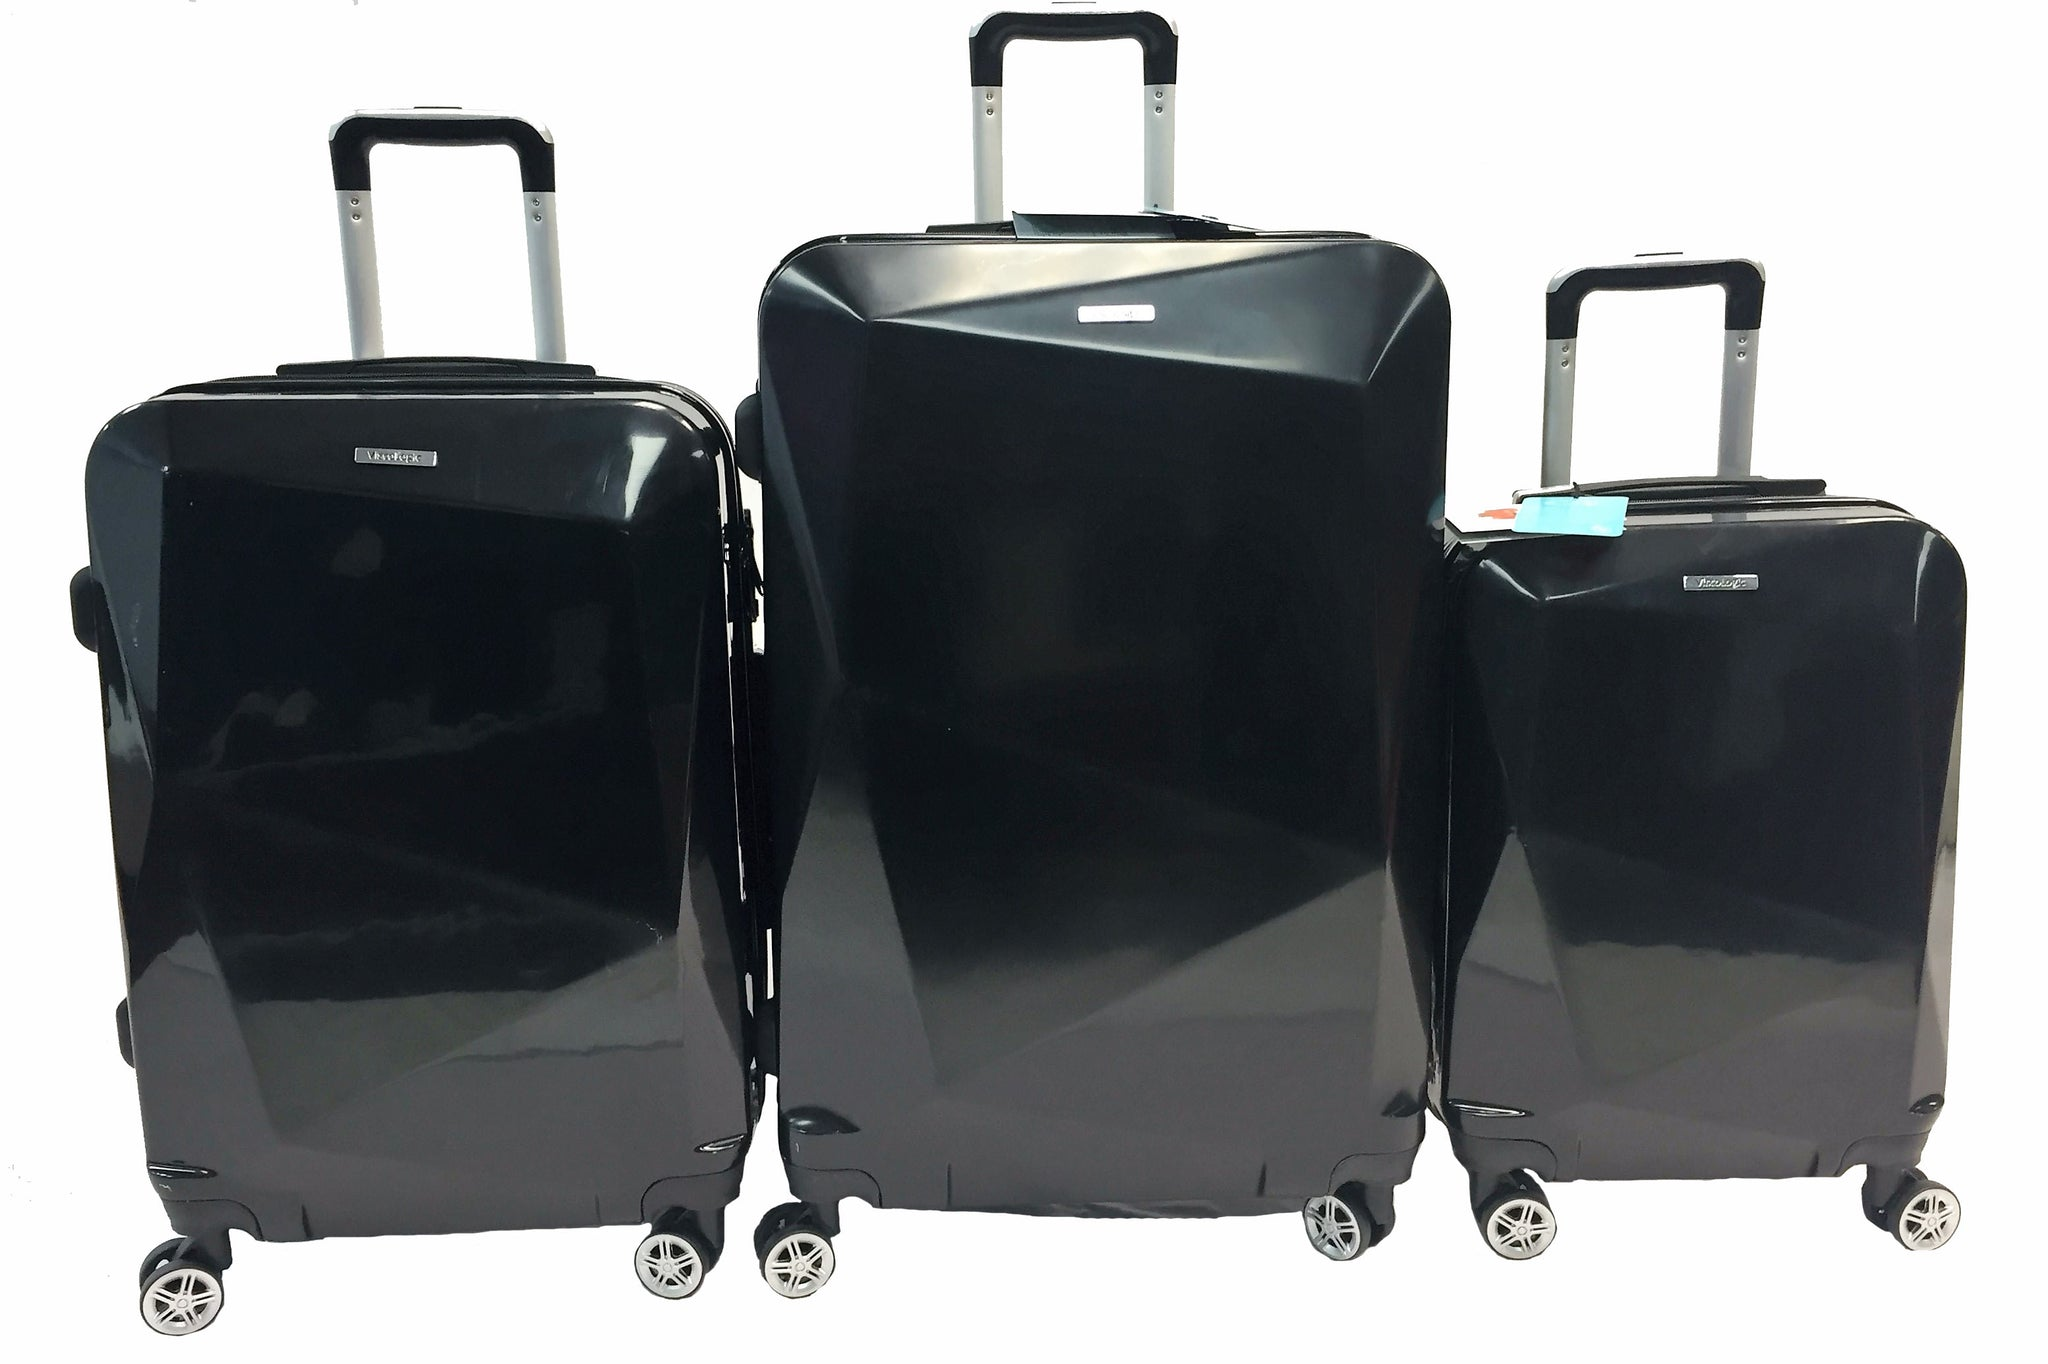 ViscoLogic 3 Piece SMART-EDGE Luggage Set (28-24 & 20 inches)